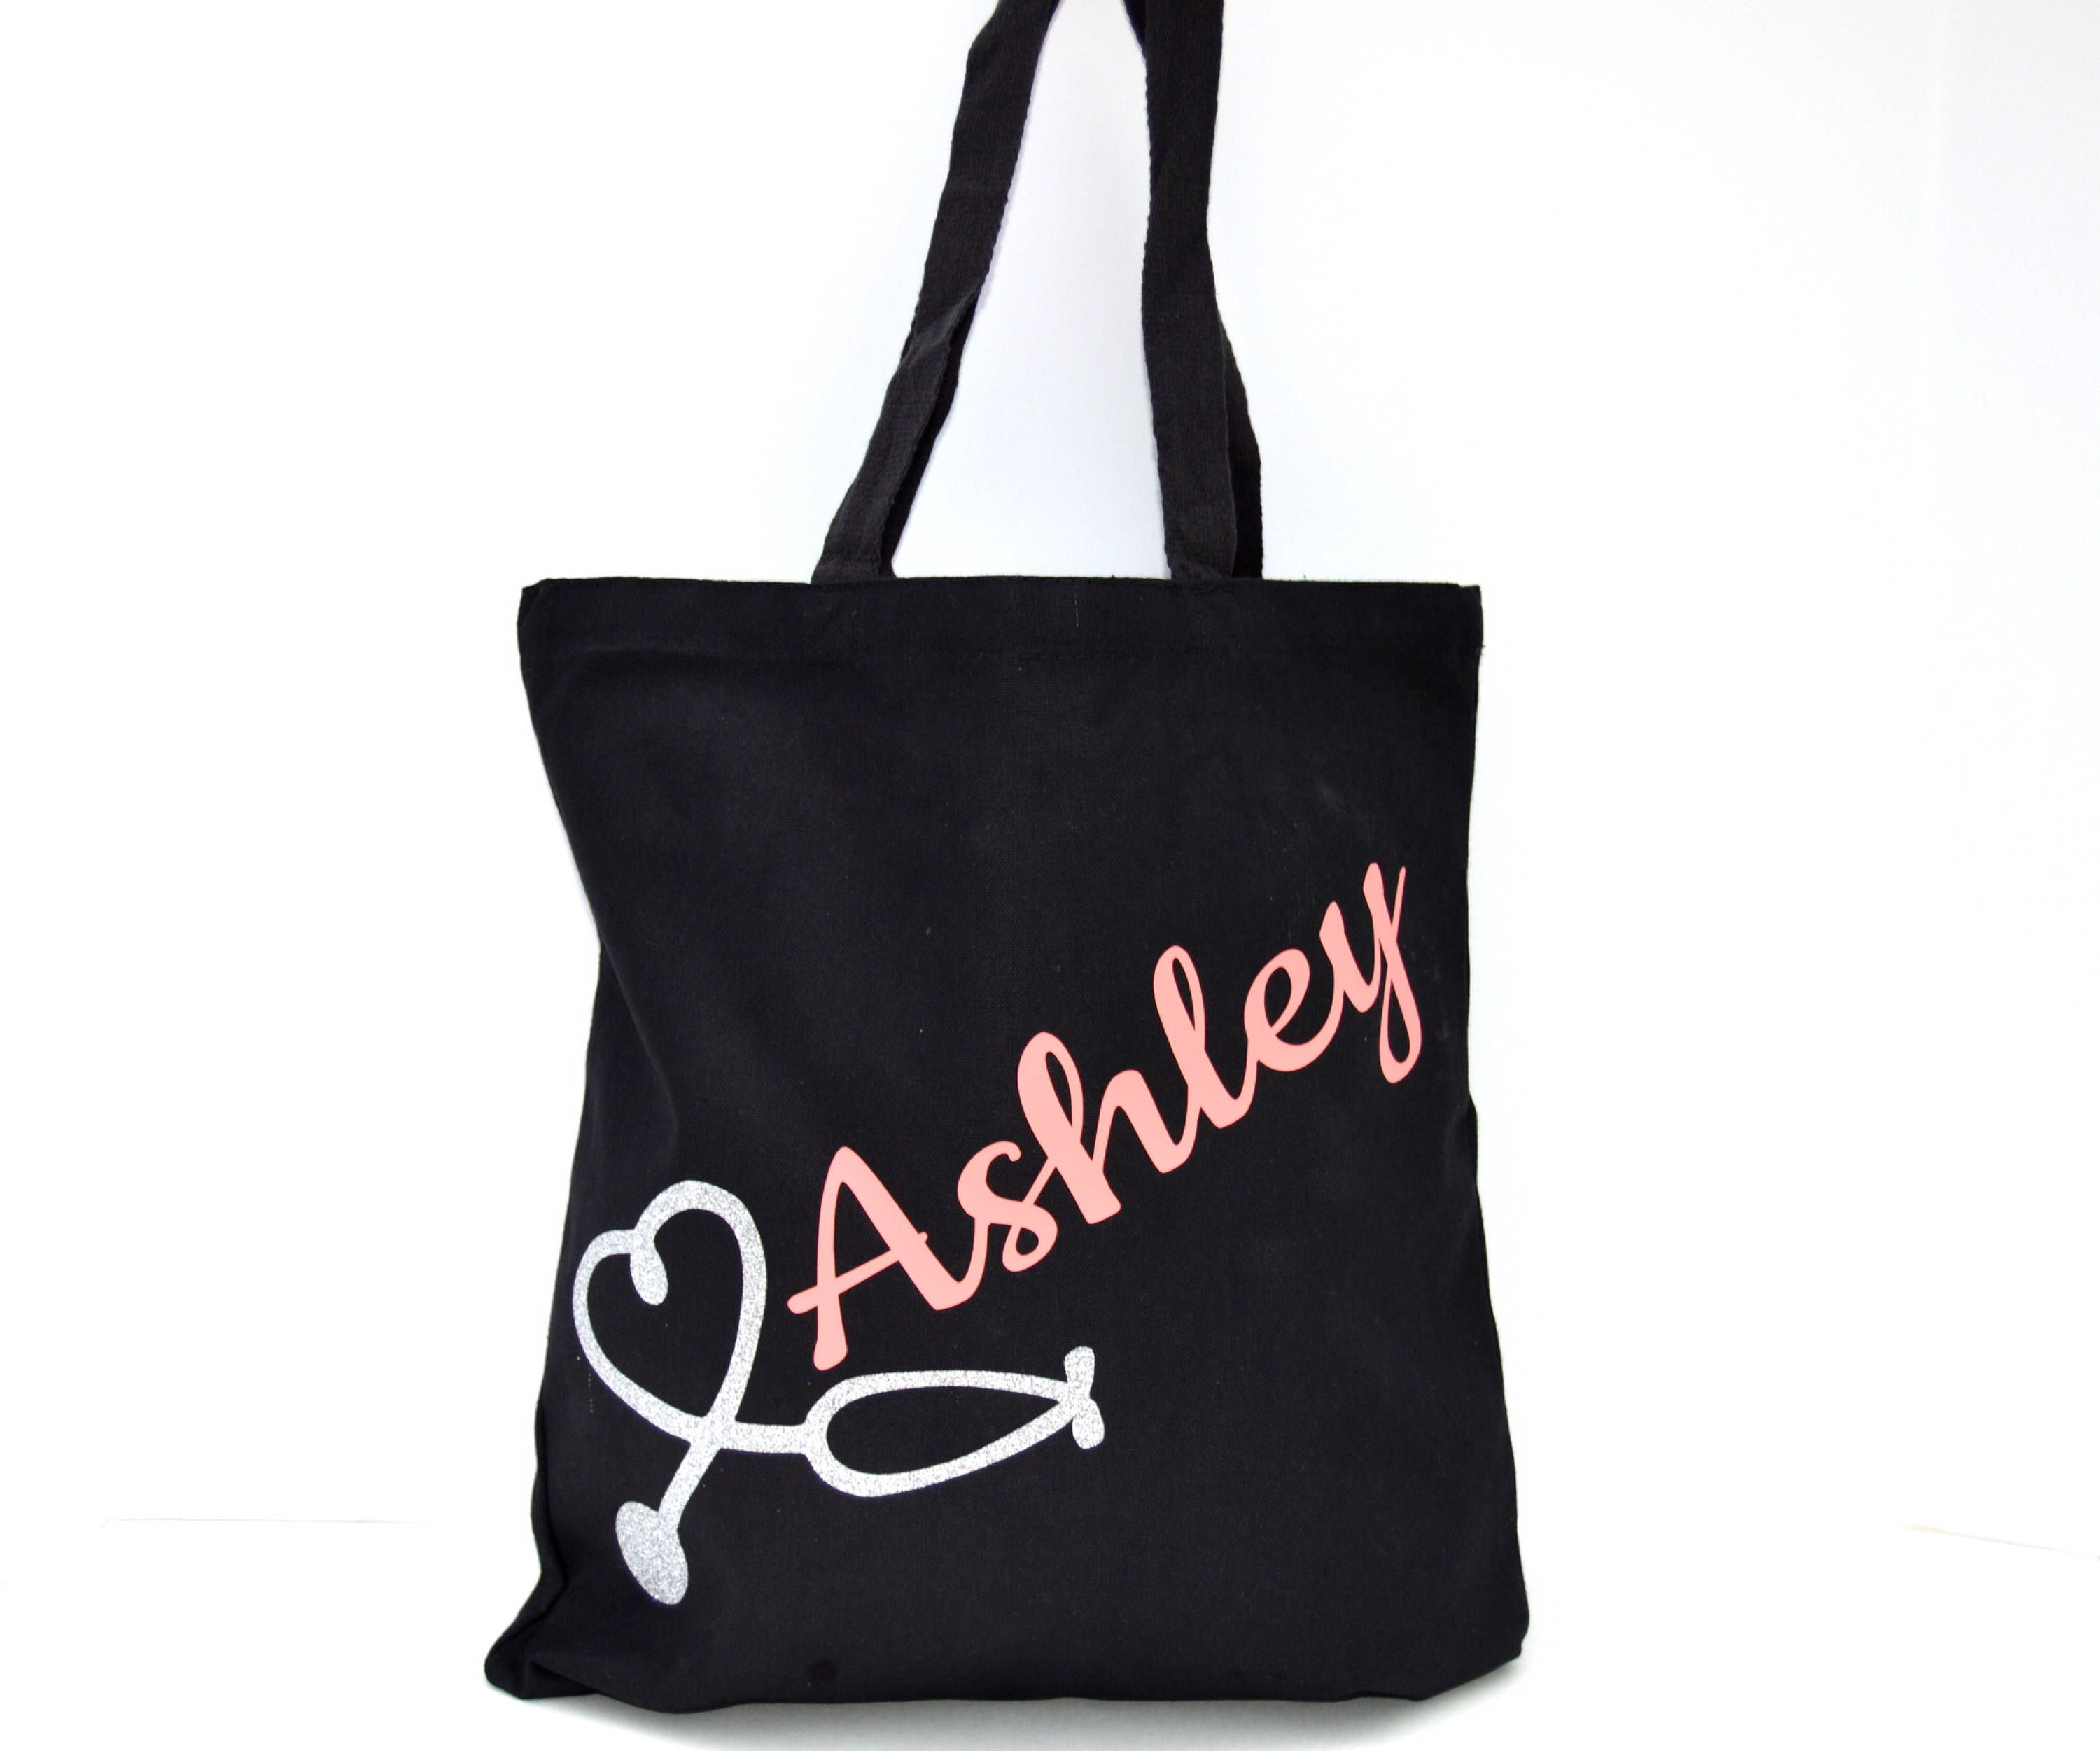 Personalized Nurse Tote Bags Are Excellent Gifts For Nursing Students Recently Graduated Nurses Medical